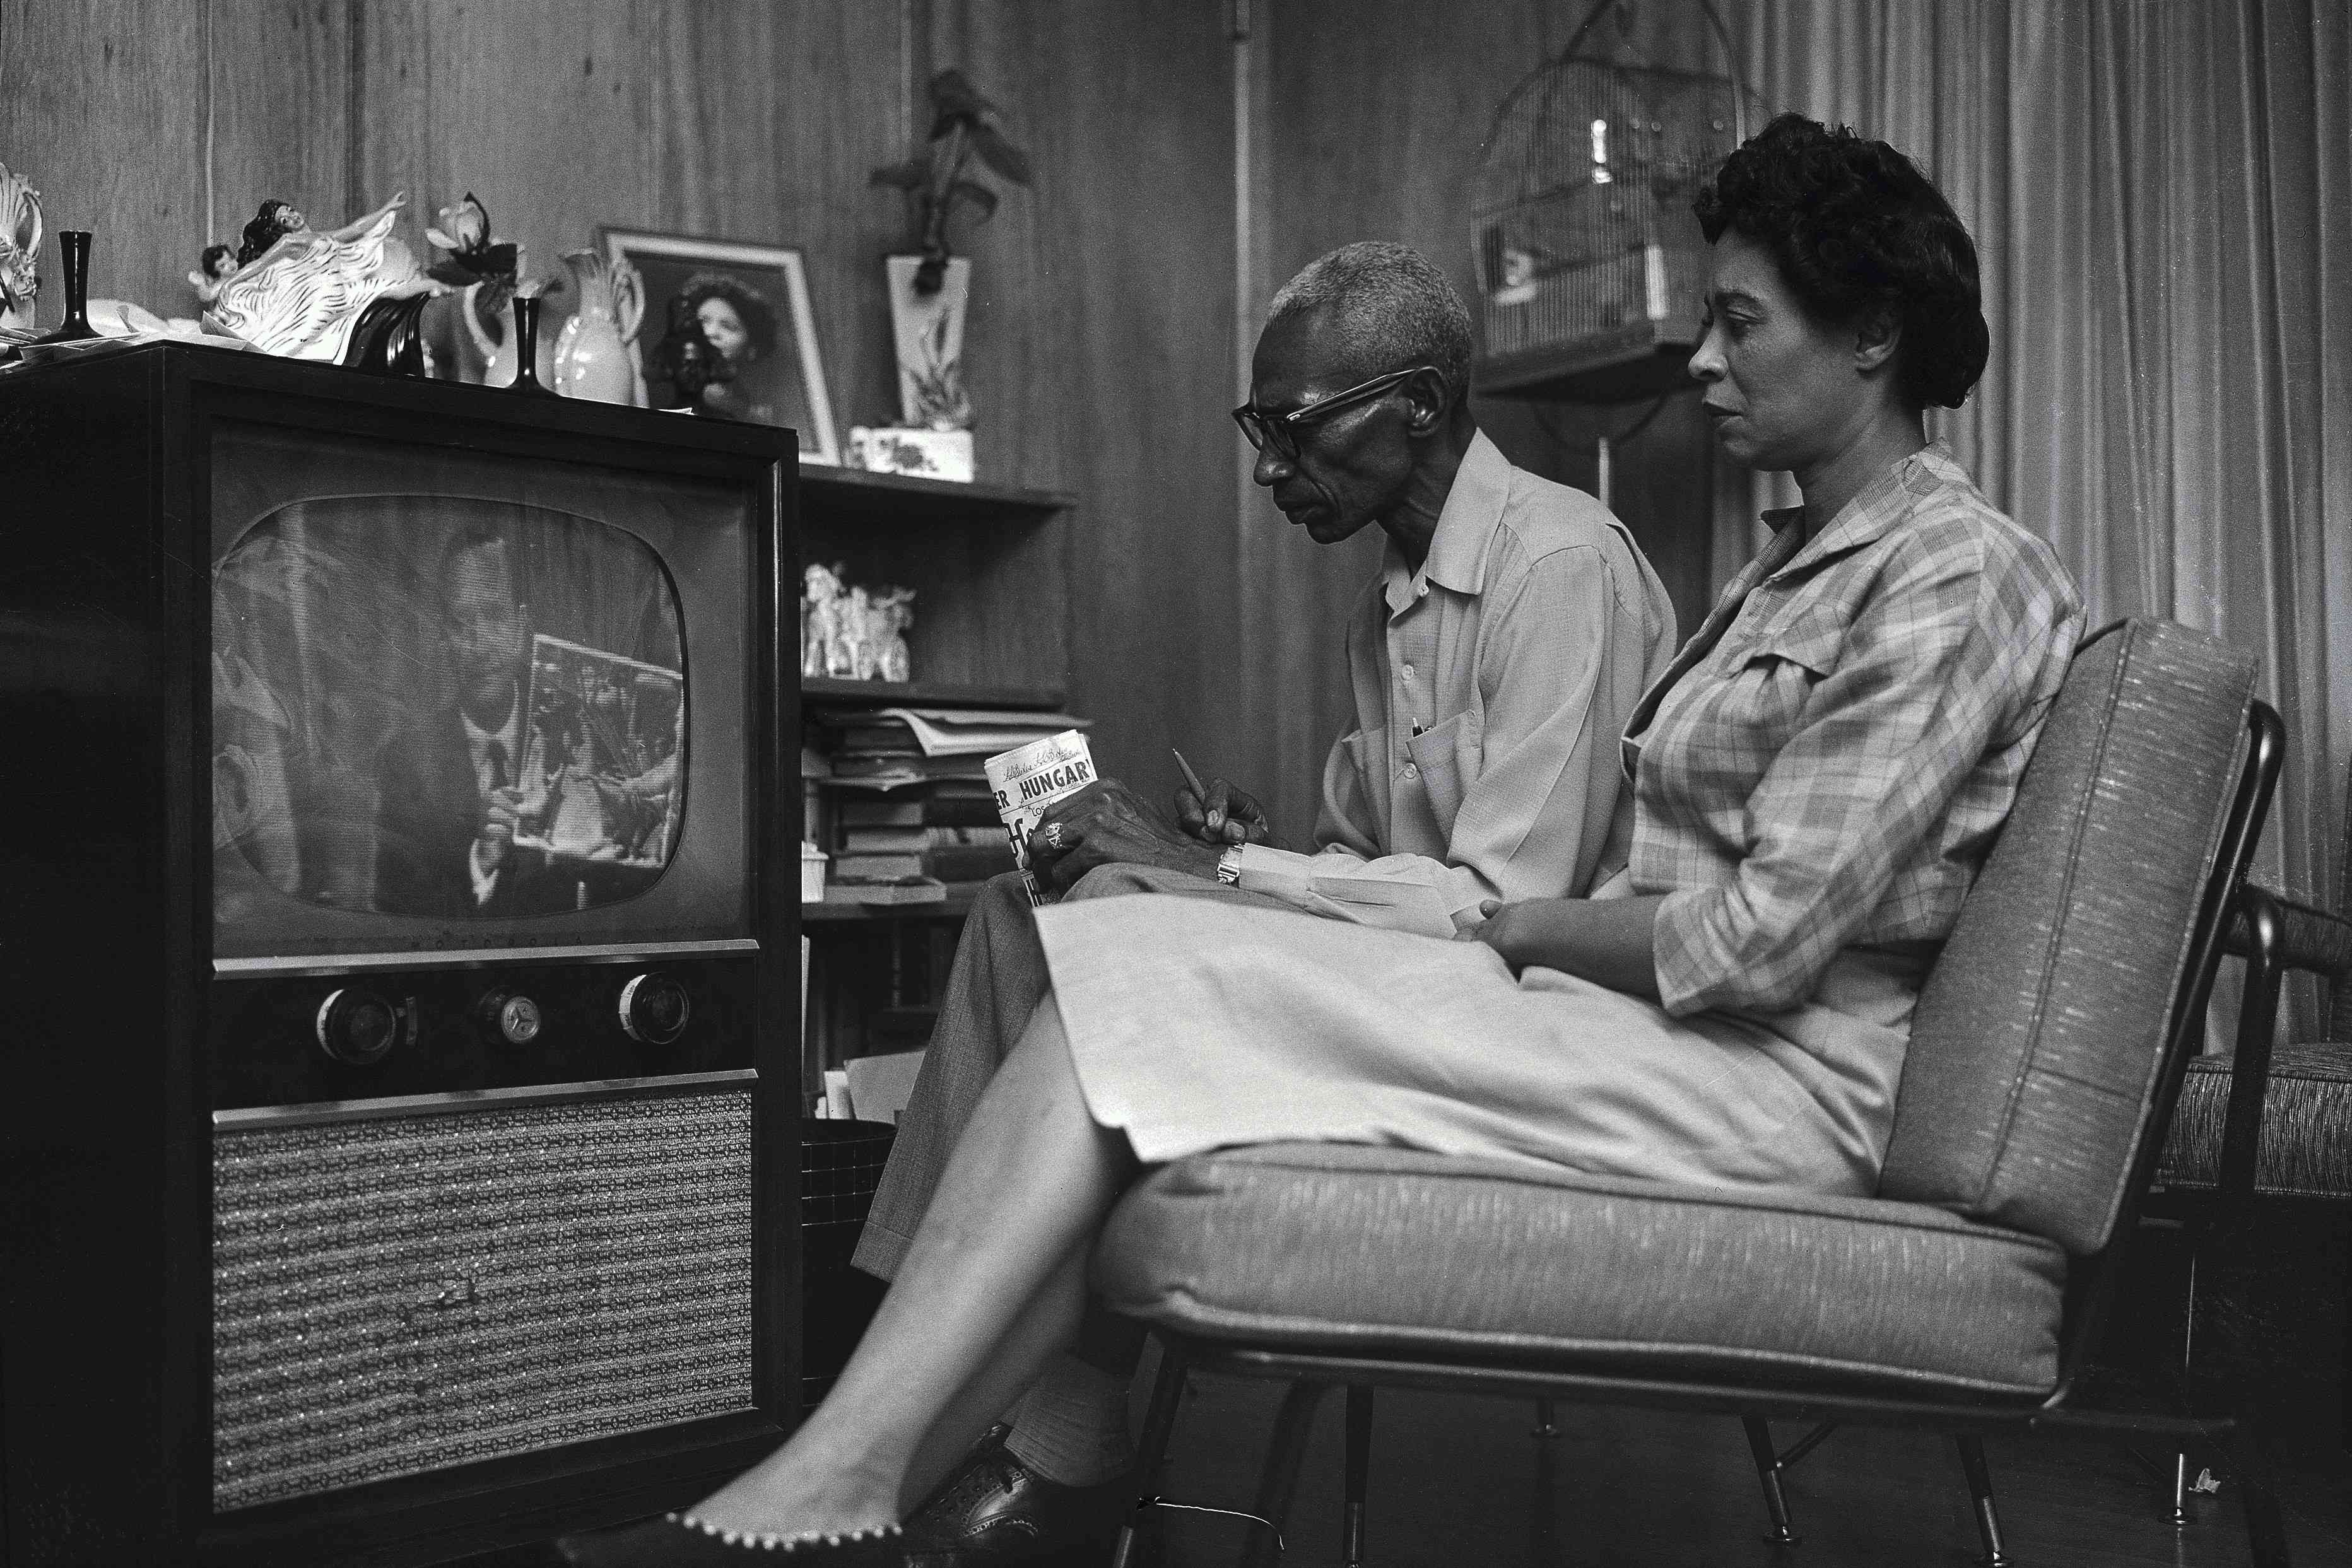 Daisy Bates and husband L.C. watching television with concerned looks on their faces